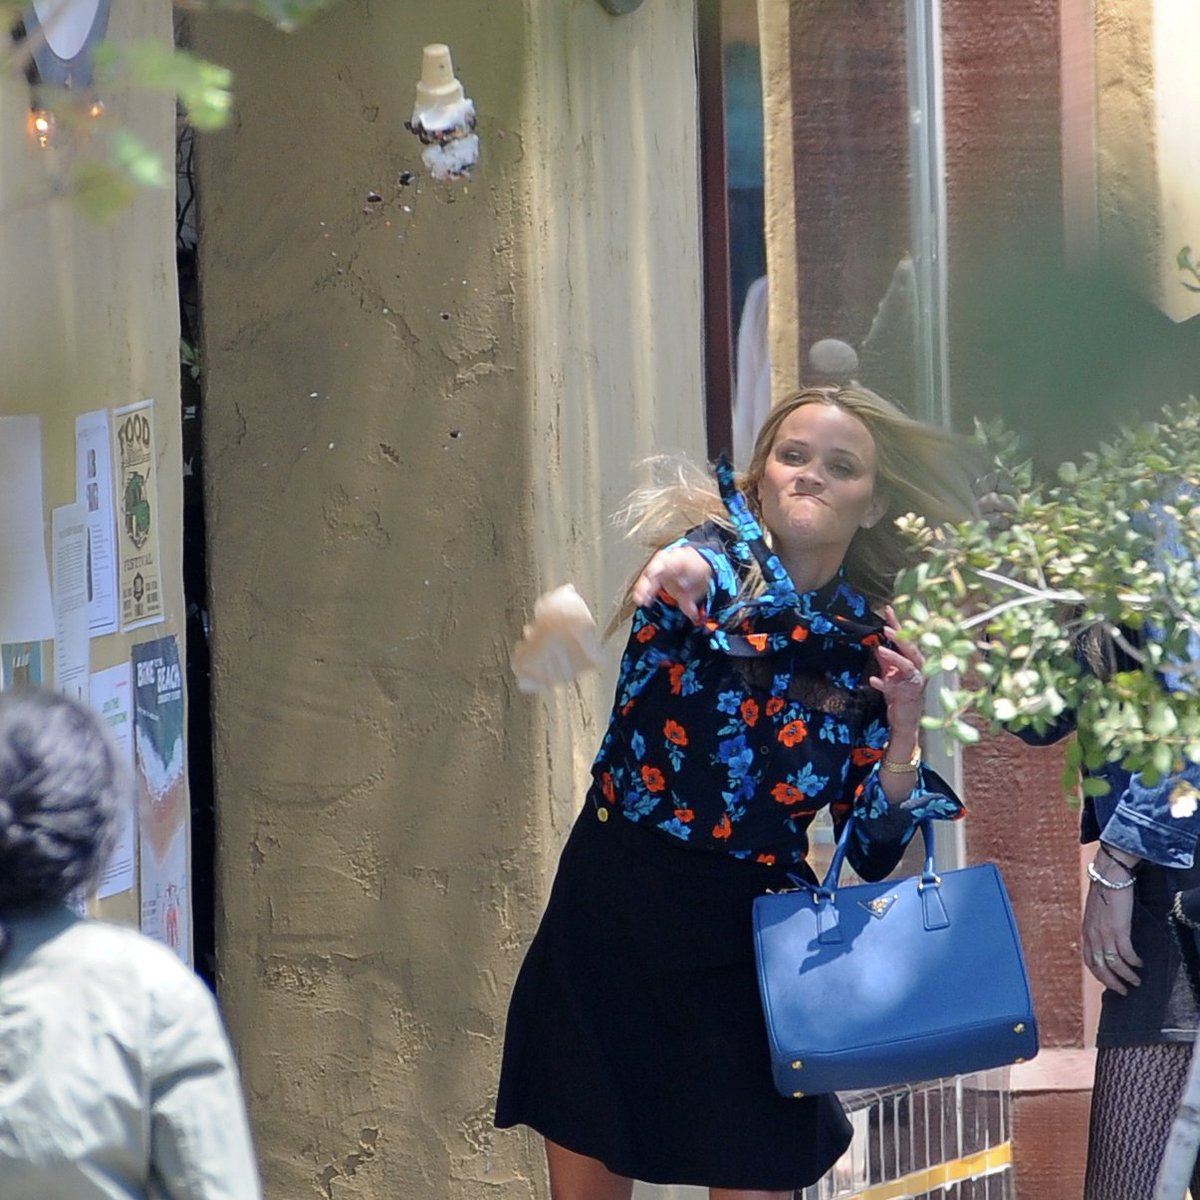 images Reese Witherspoon Throwing Ice Cream at Meryl Streep Is Now the Perfect Meme